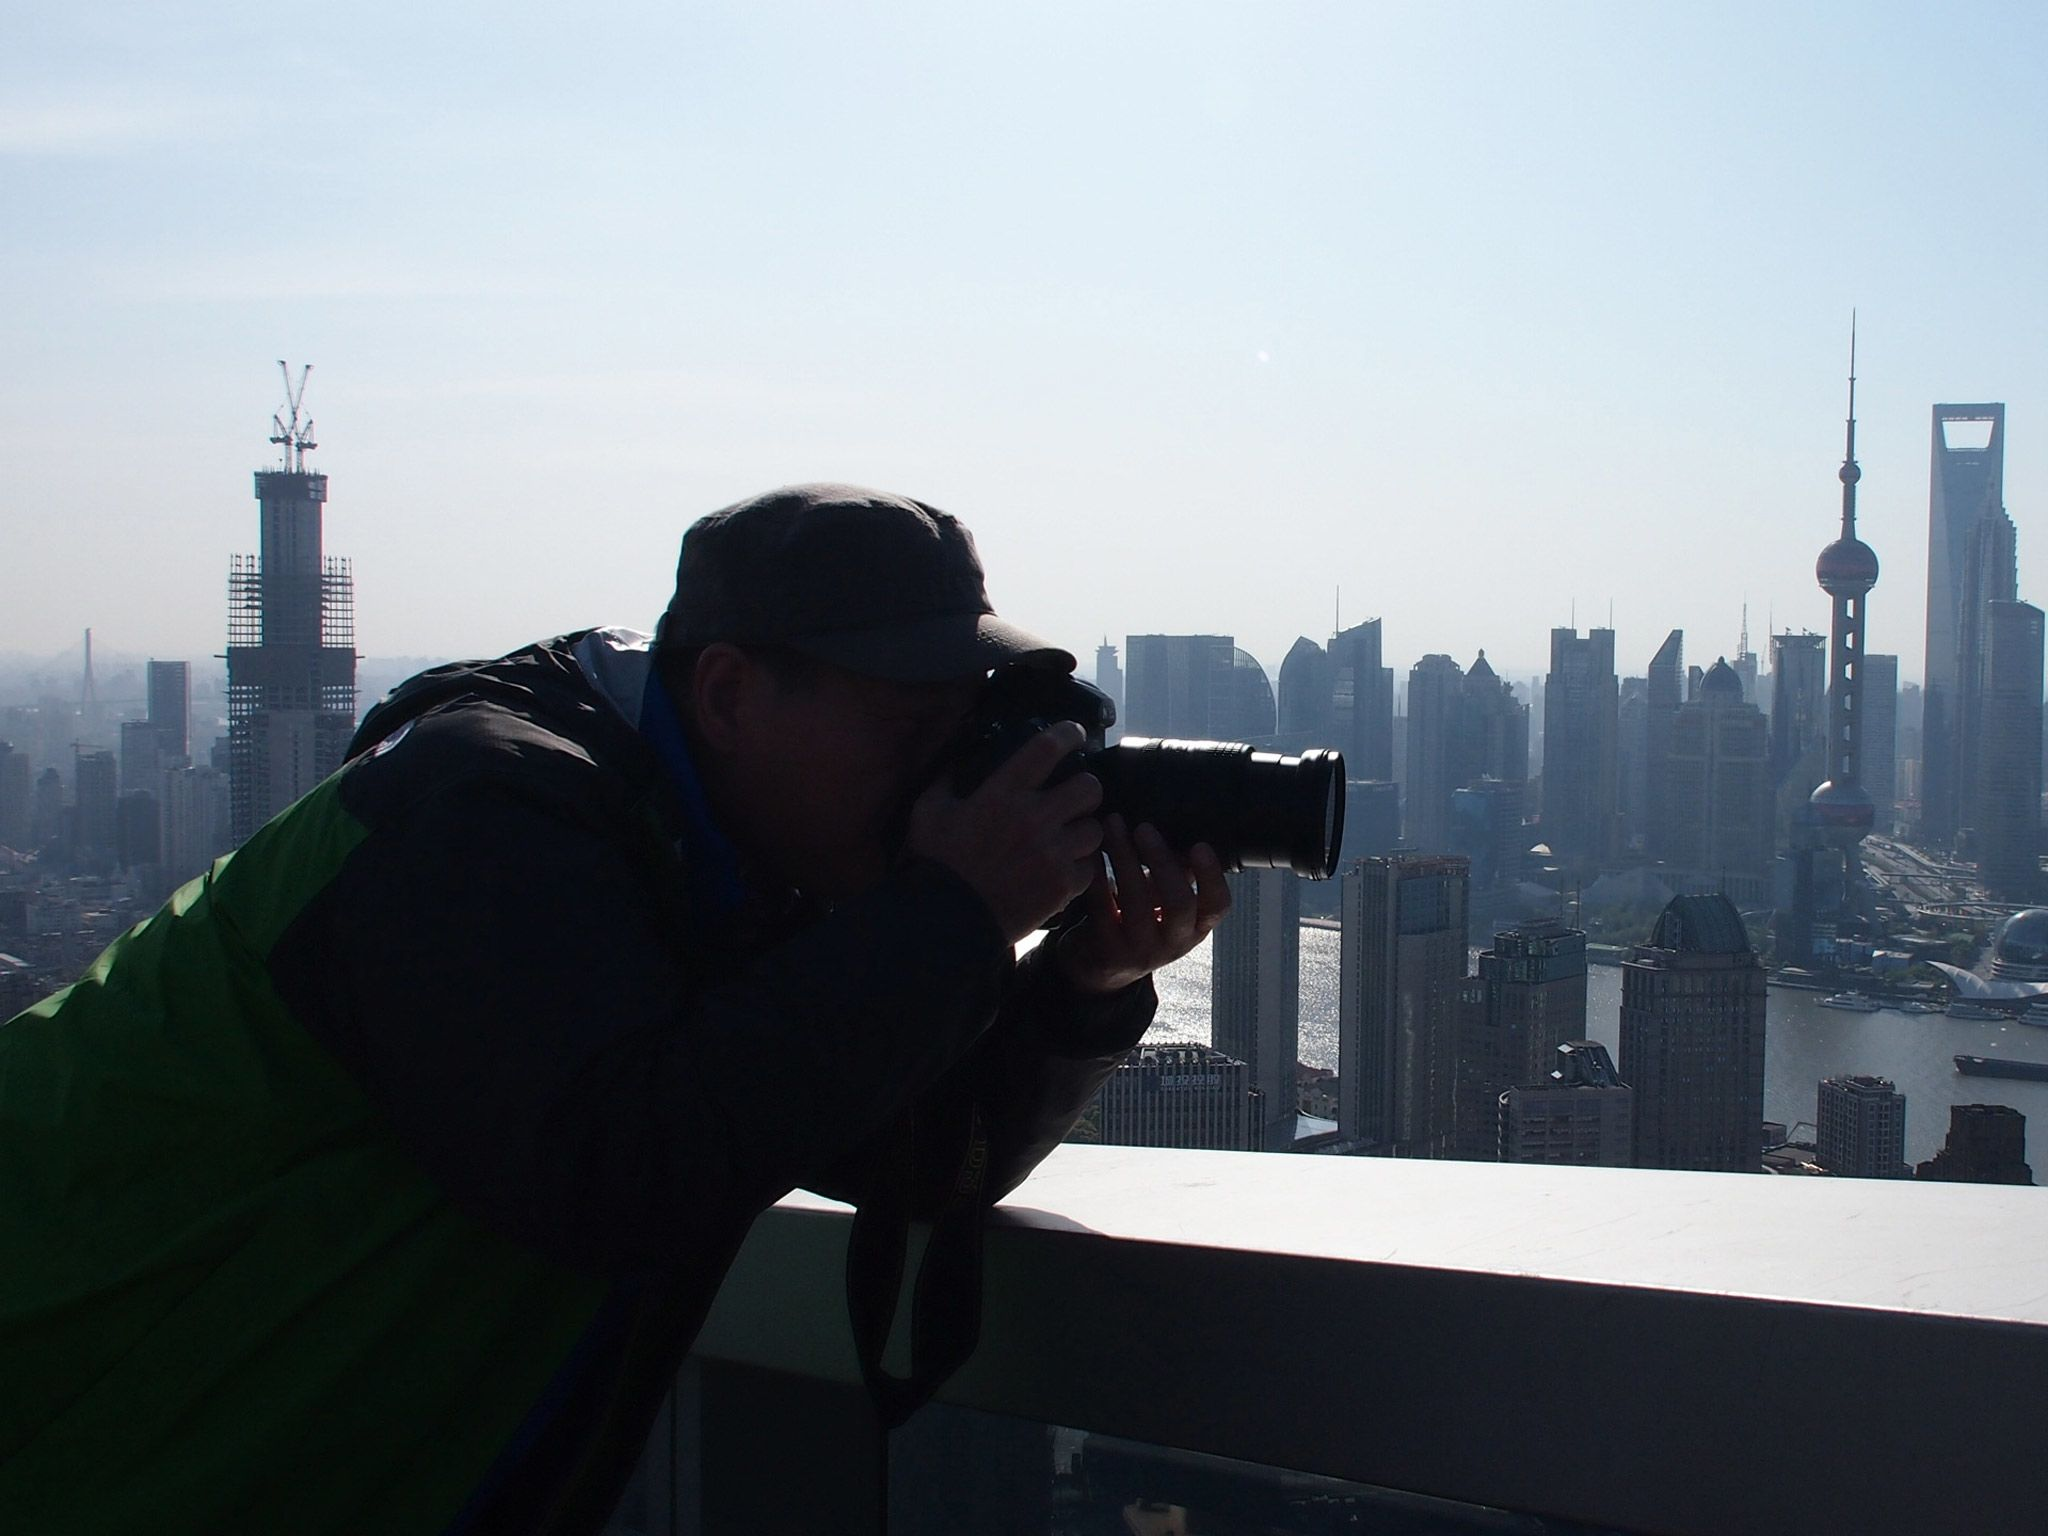 Shanghai: Photographer Zheng Xianzhang takes a photo from the rooftop of a skyscraper. [Photo of the day - juli 2015]